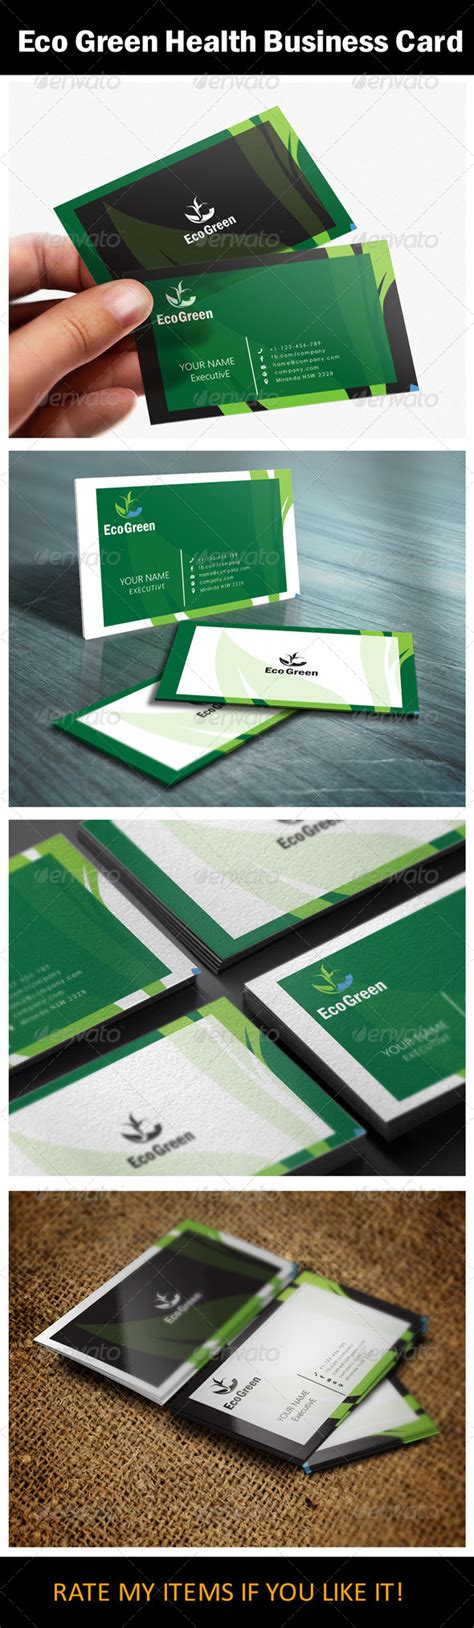 eco business card templates eco green health business card logoby us